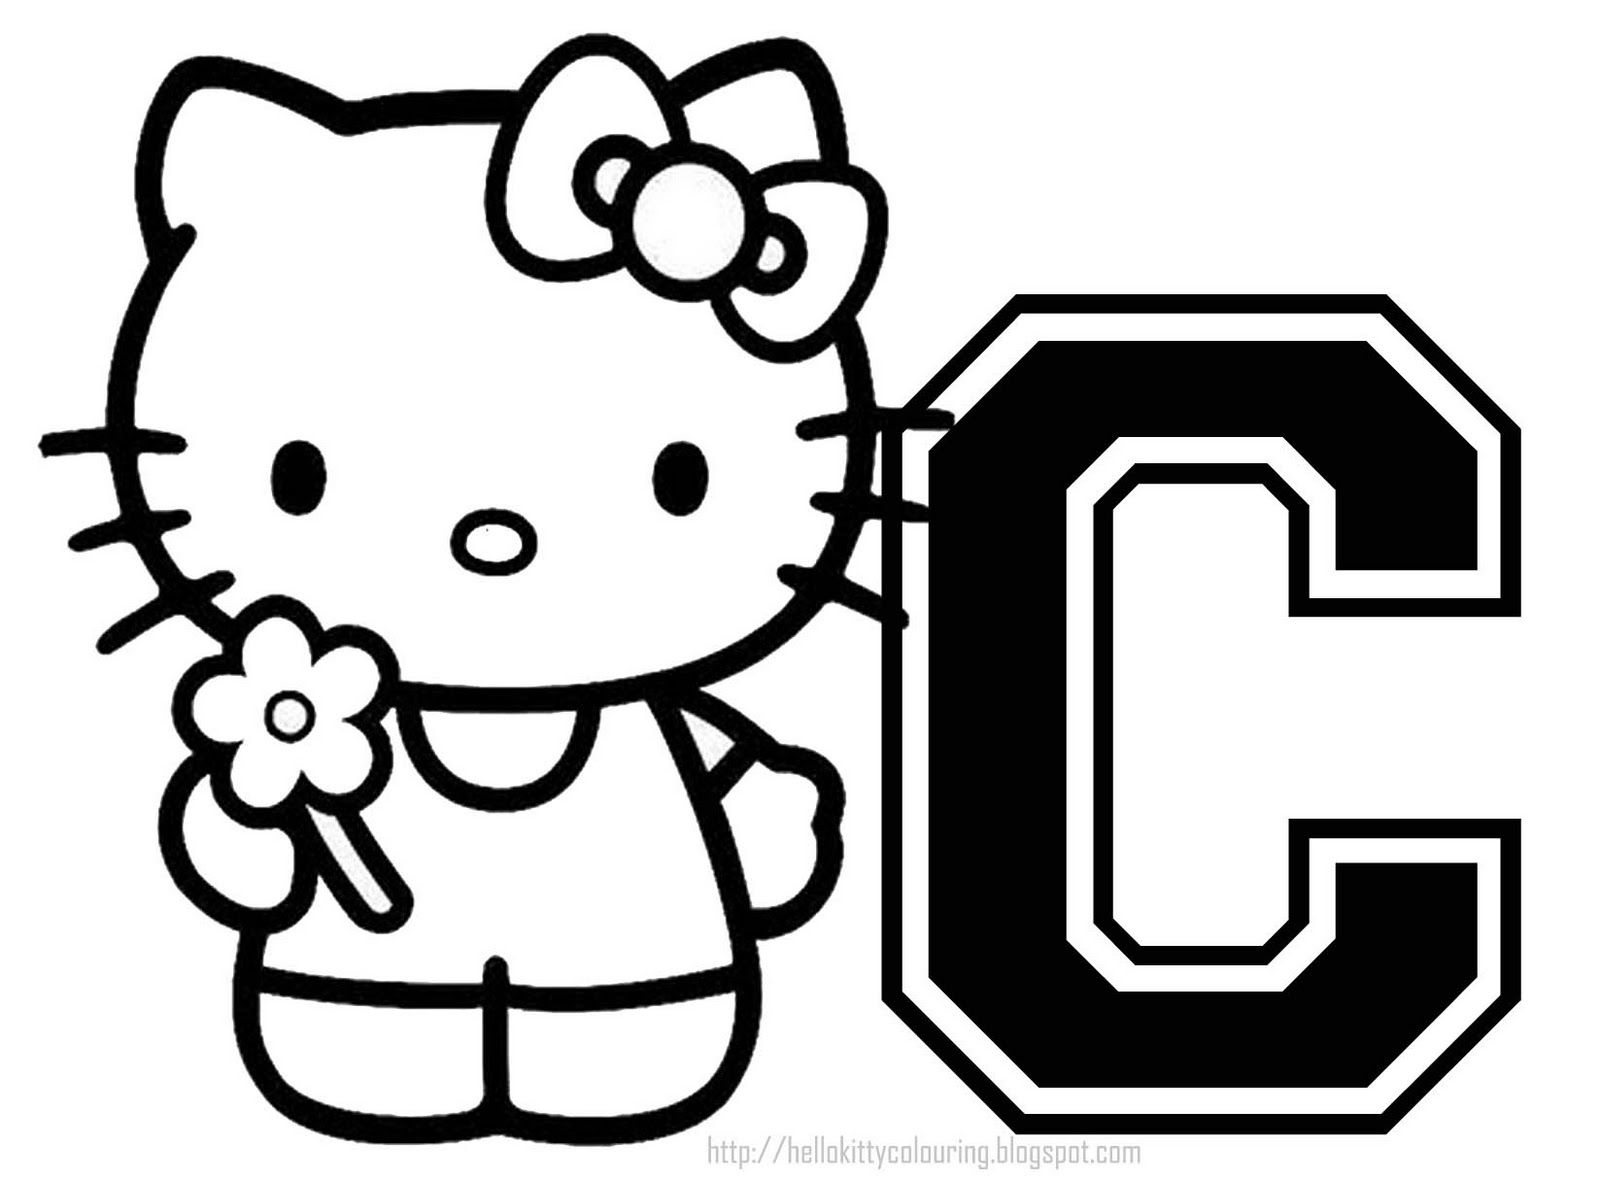 personalised+hello+kitty+coloring+page+letter+%283%29.jpg 1,600 ...